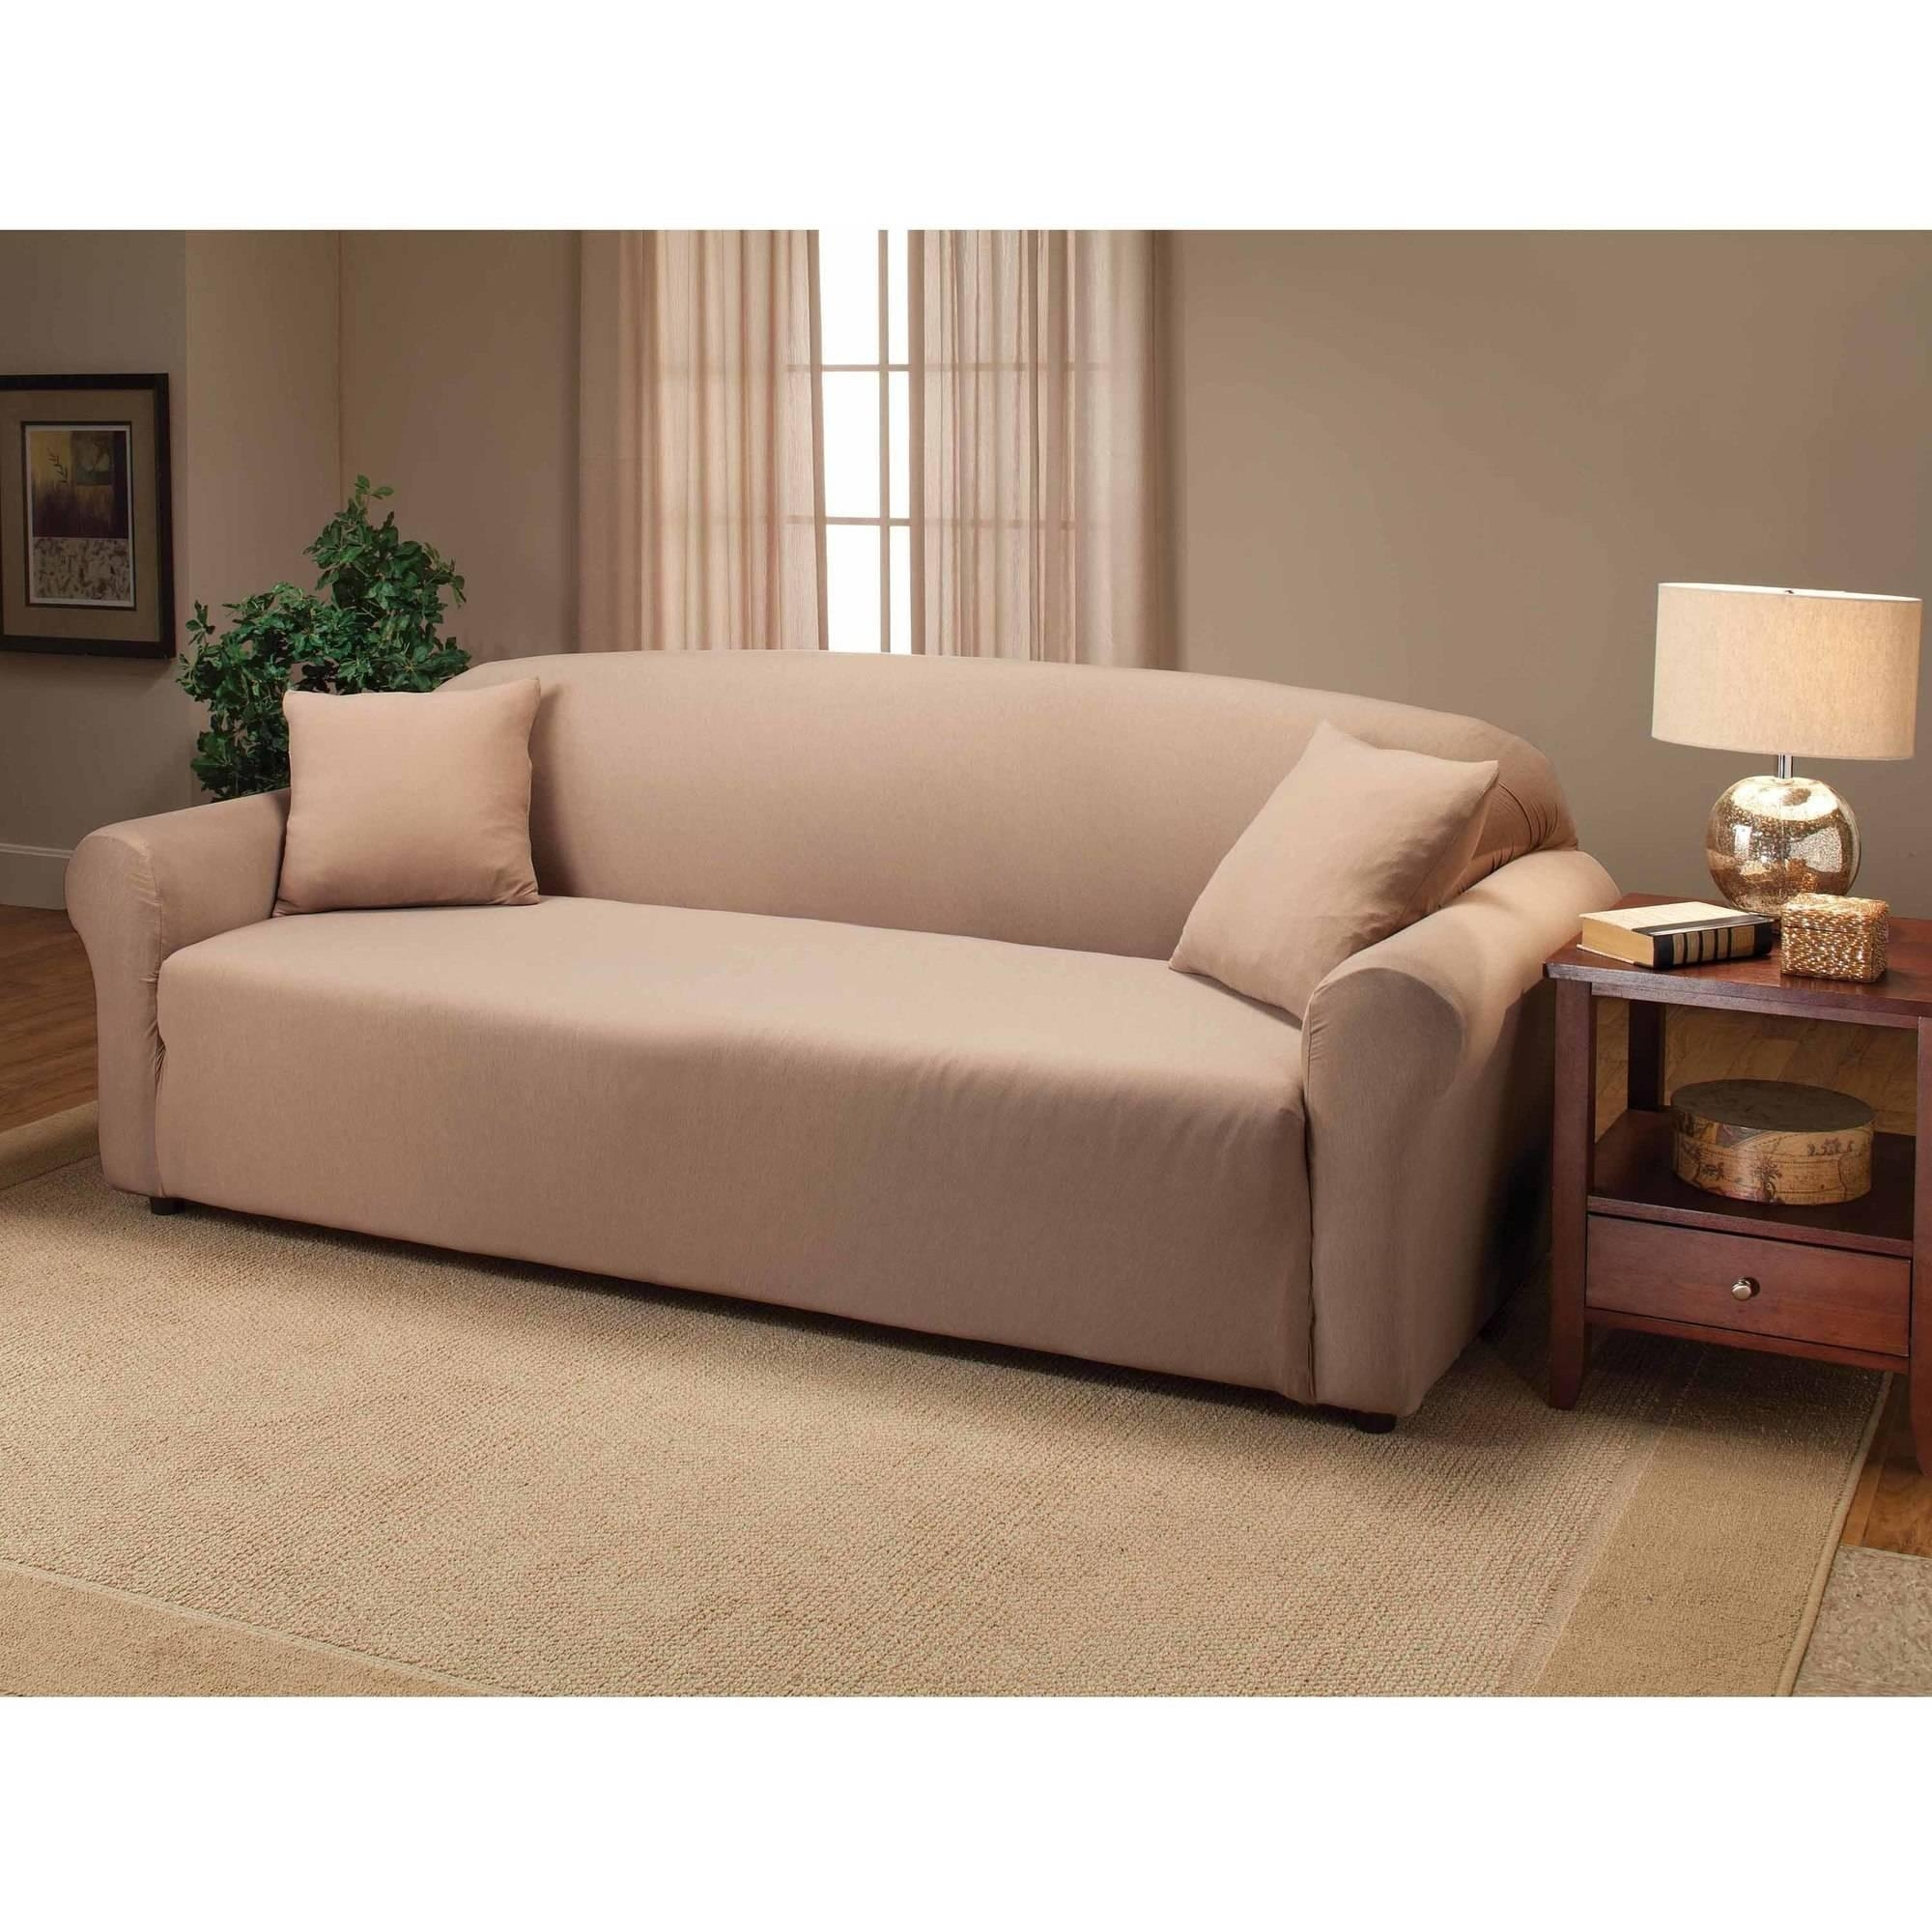 ideas reclining sofa for there leather recliner loveseats surprising and bestr are slipcovers picture sofas slipcover